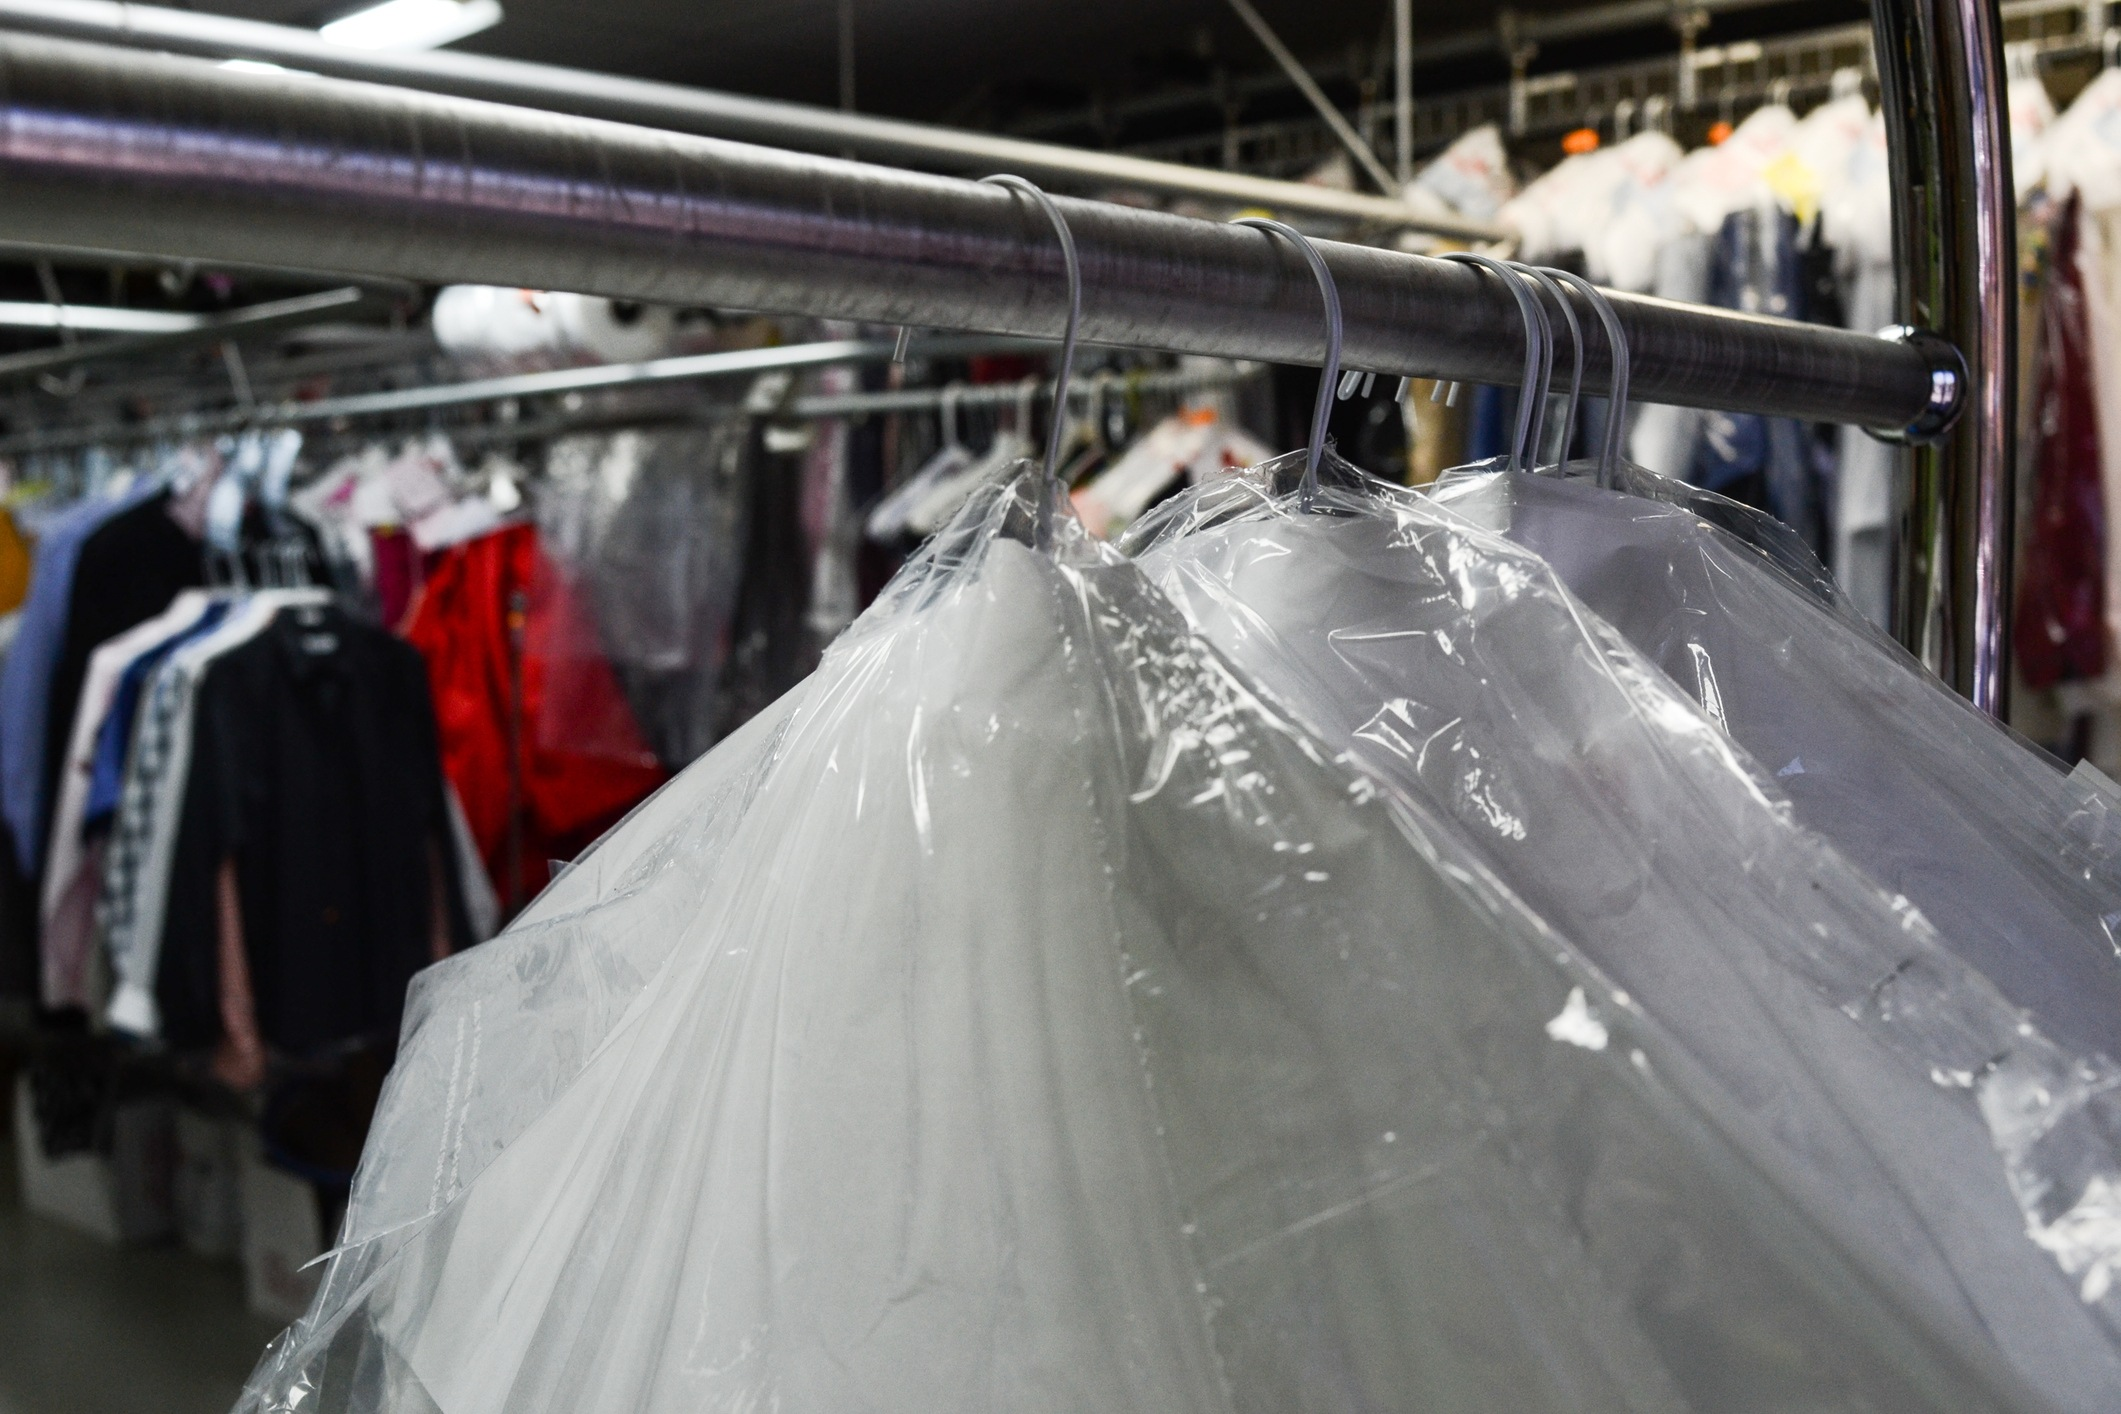 Dry cleaned clothes in plastic with business in back